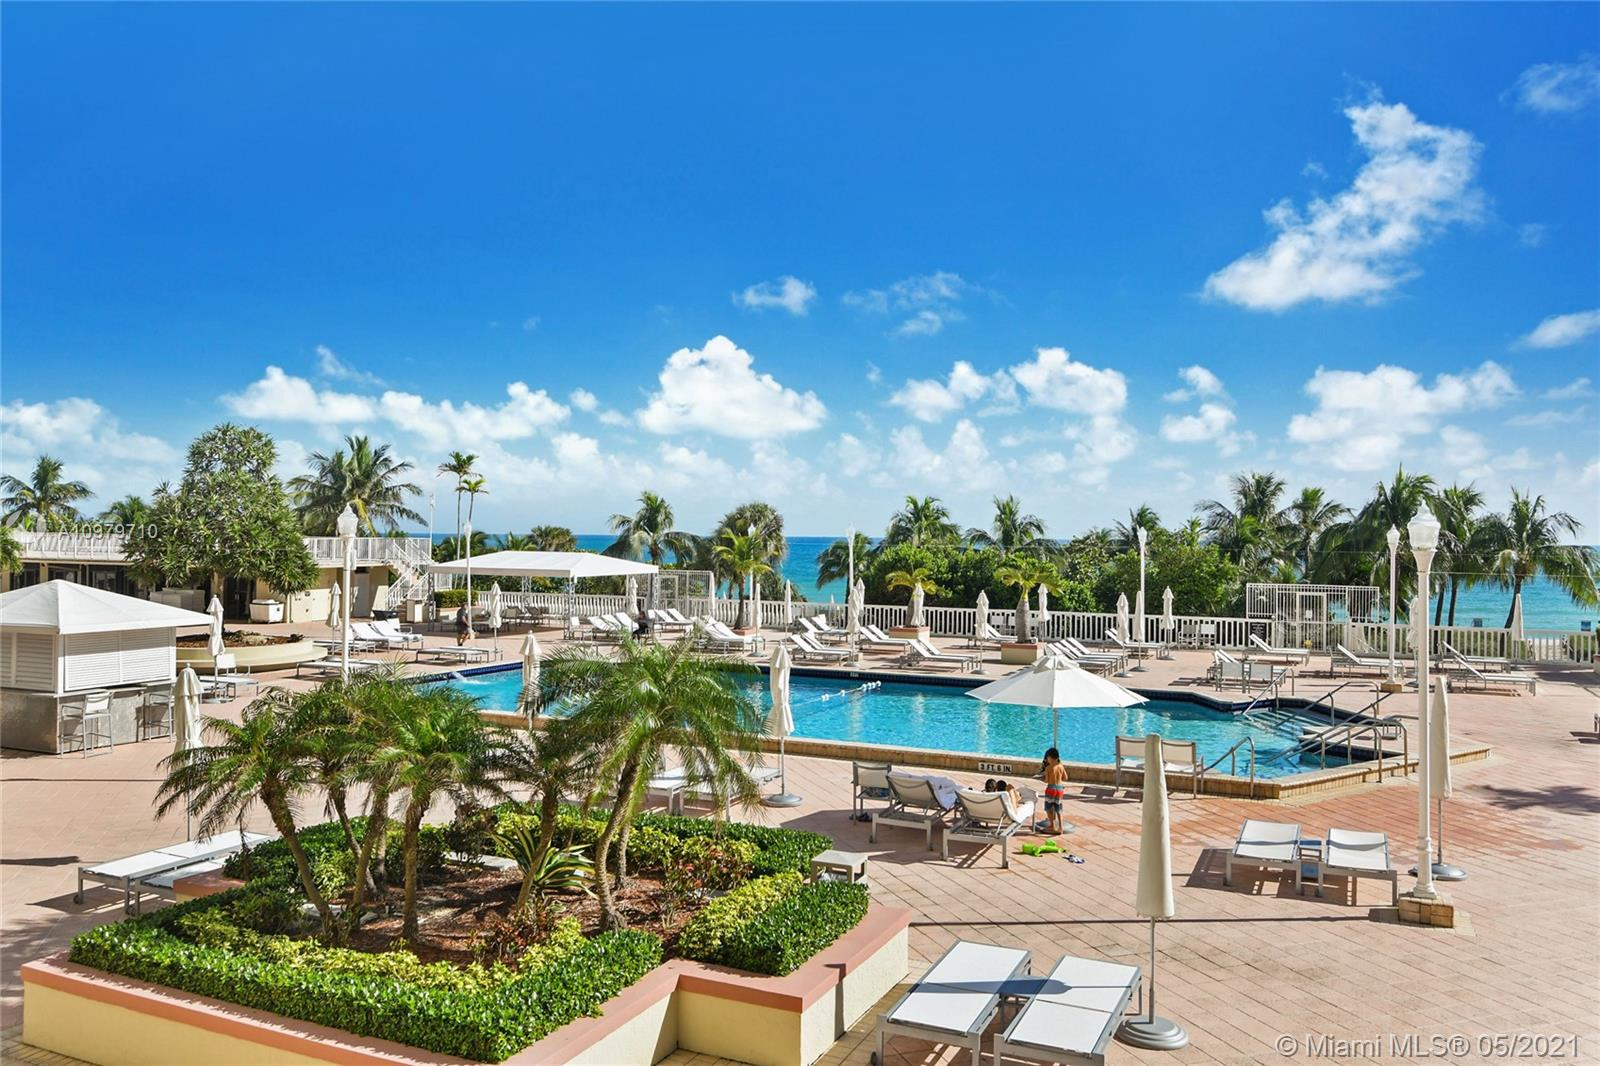 Photo of 9801 Collins Ave #10R, Bal Harbour, Florida, 33154 - Pool area , bar